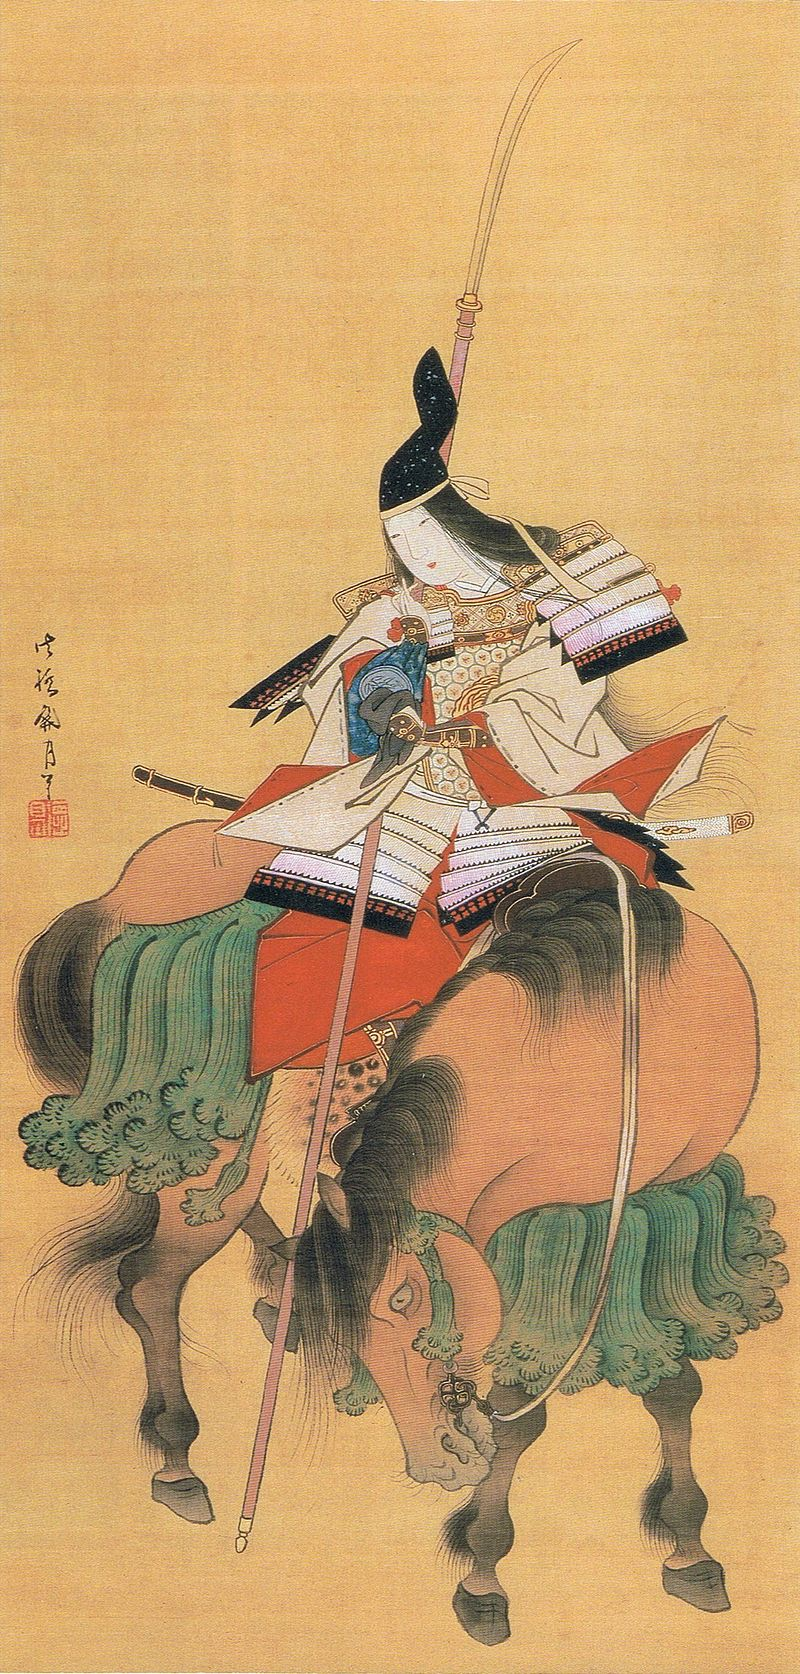 Image Attribute: By 蔀関月筆 - 東京国立博物館所蔵, Public Domain,  https://commons.wikimedia.org/w/index.php?curid=8277328